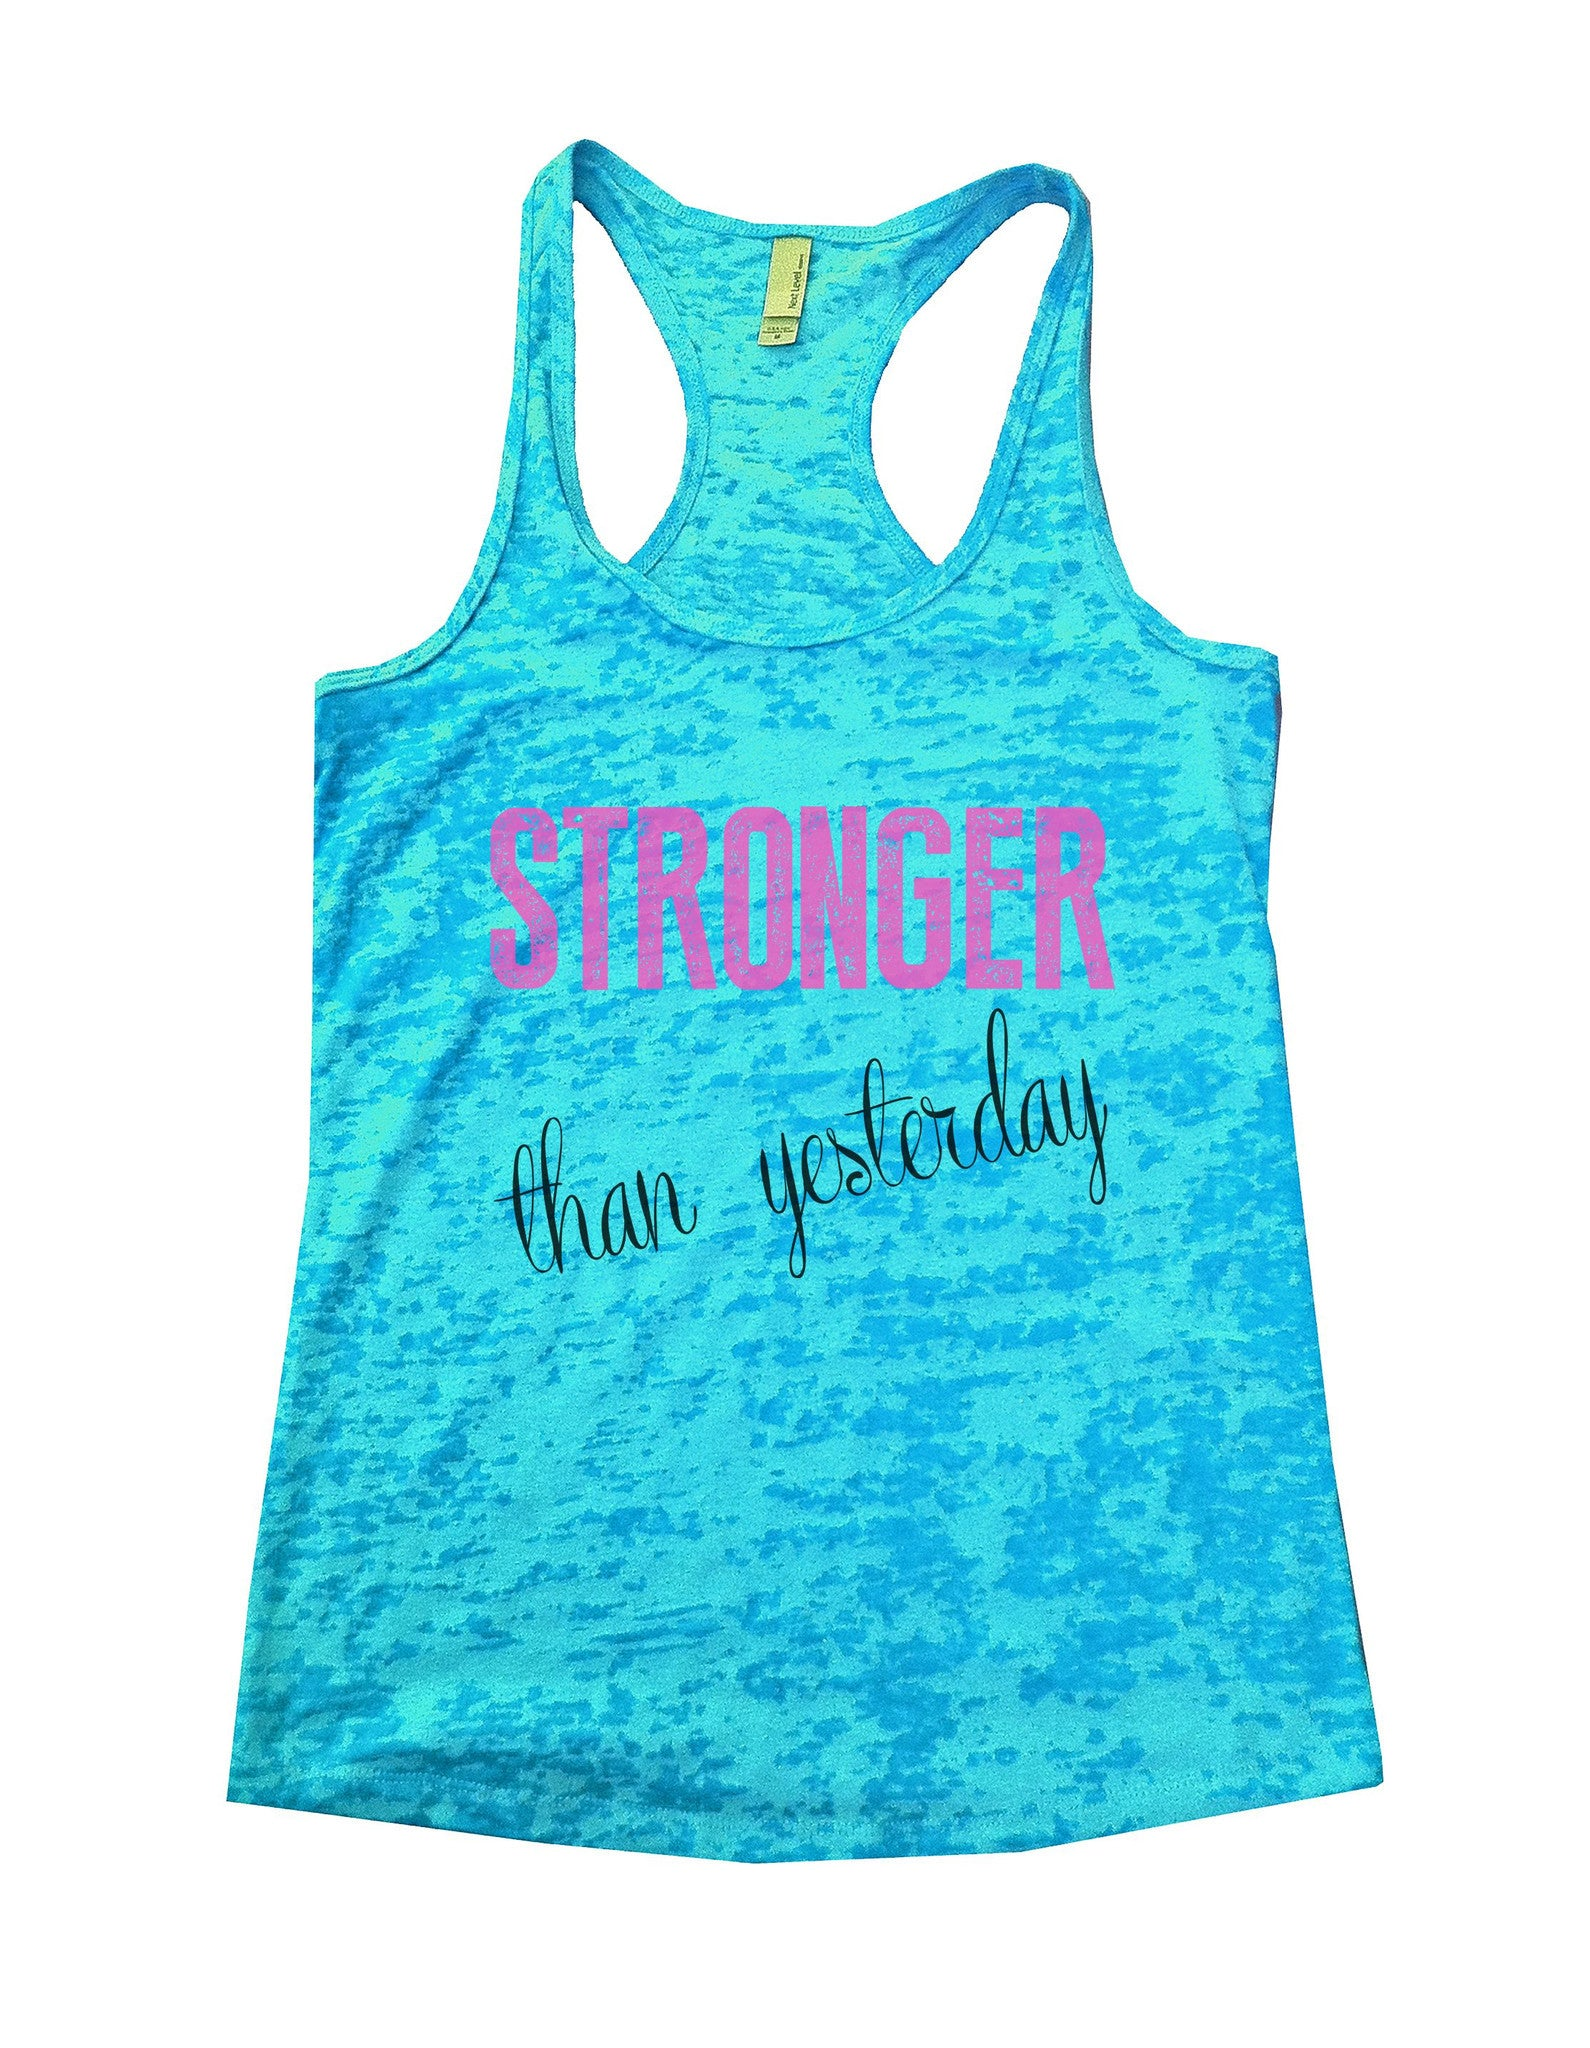 Stronger Than Yesterday Burnout Tank Top By BurnoutTankTops.com - 768 - Funny Shirts Tank Tops Burnouts and Triblends  - 4